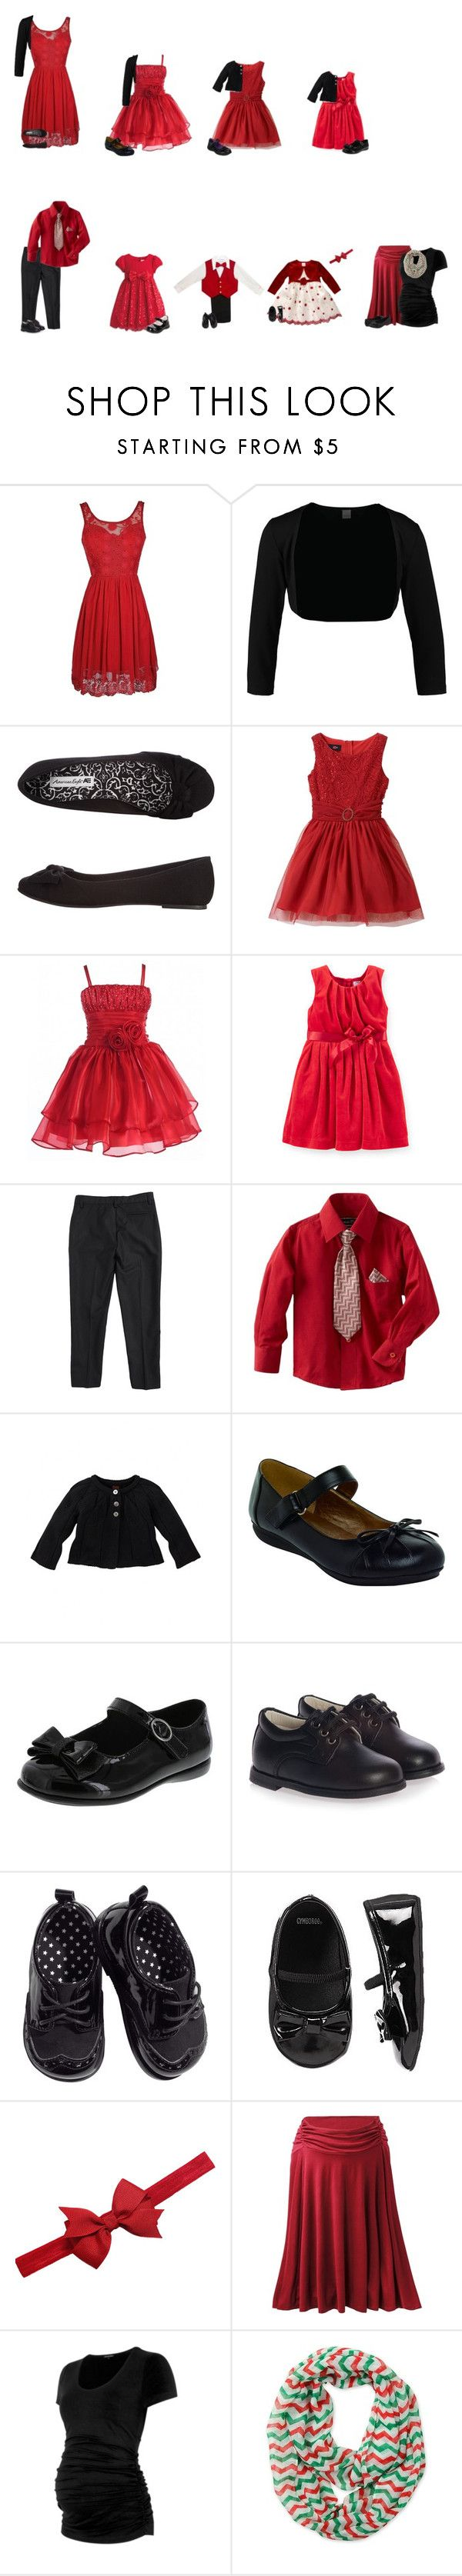 """""""Kids Outfit of the Day"""" by besties-iconsandtips-for-christ ❤ liked on Polyvore featuring Sir Oliver, Avery, Amy Byer, Carter's, Bardot Junior, Lasonia, Primigi, H&M and Call it SPRING"""